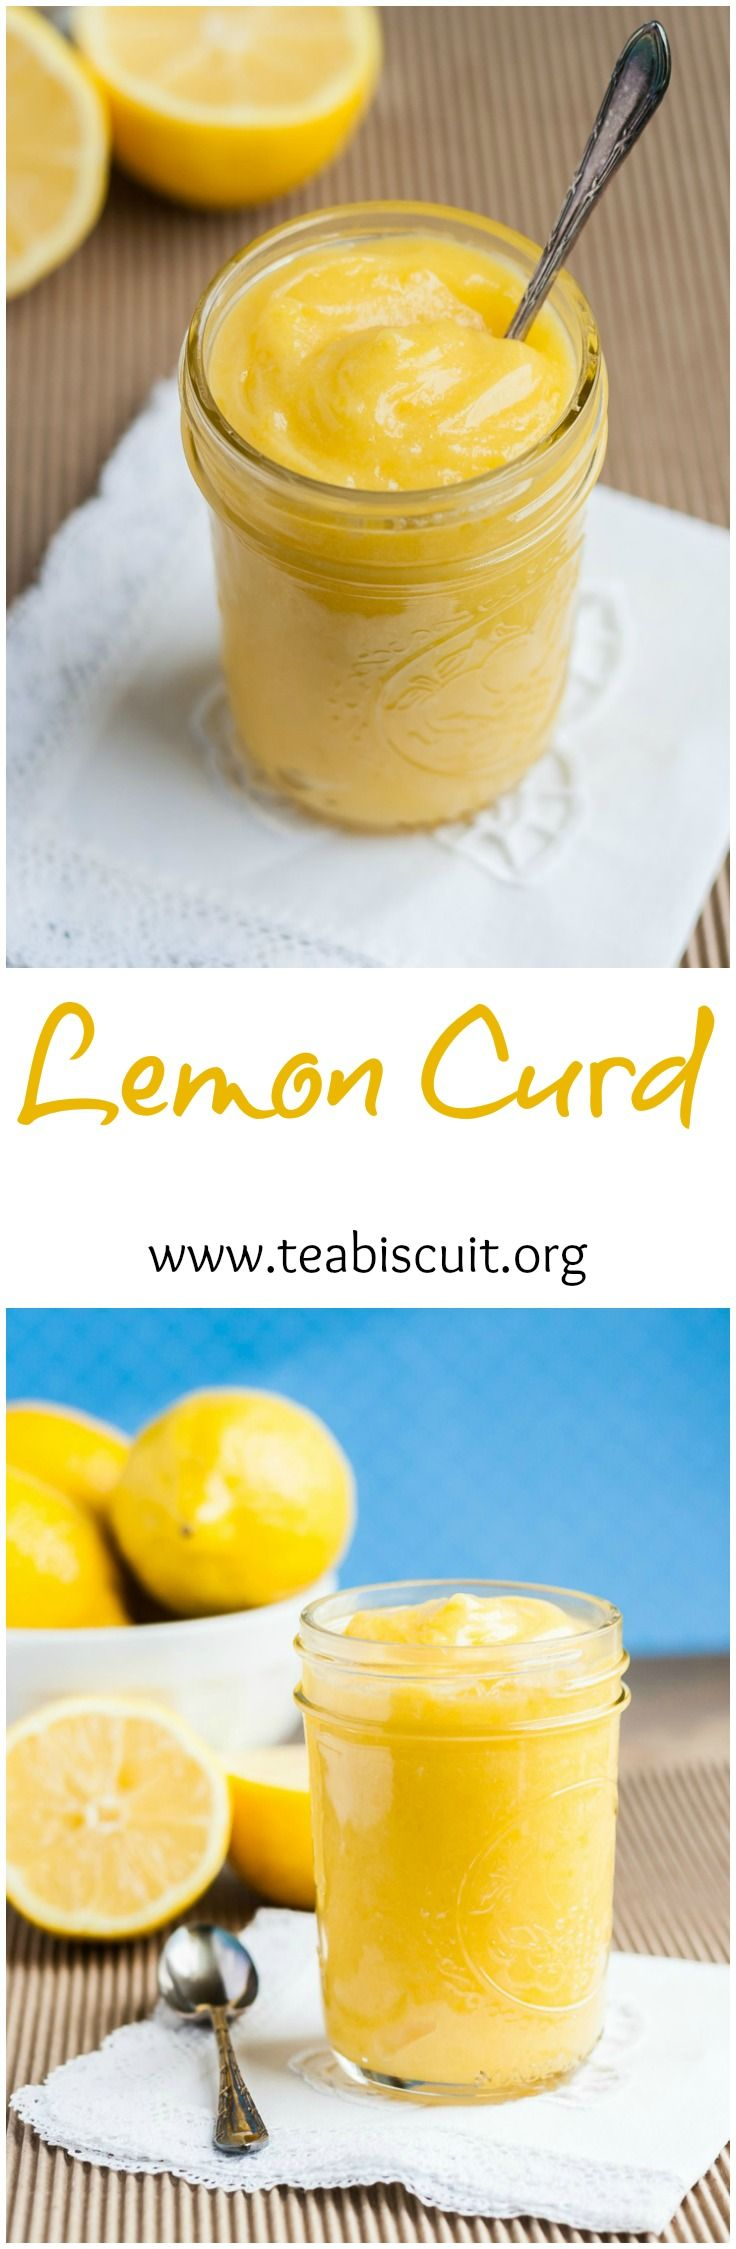 Food and Drink. Quick and Easy recipe for Lemon Curd that can be made dairy free or with butter | www.teabiscuit.org